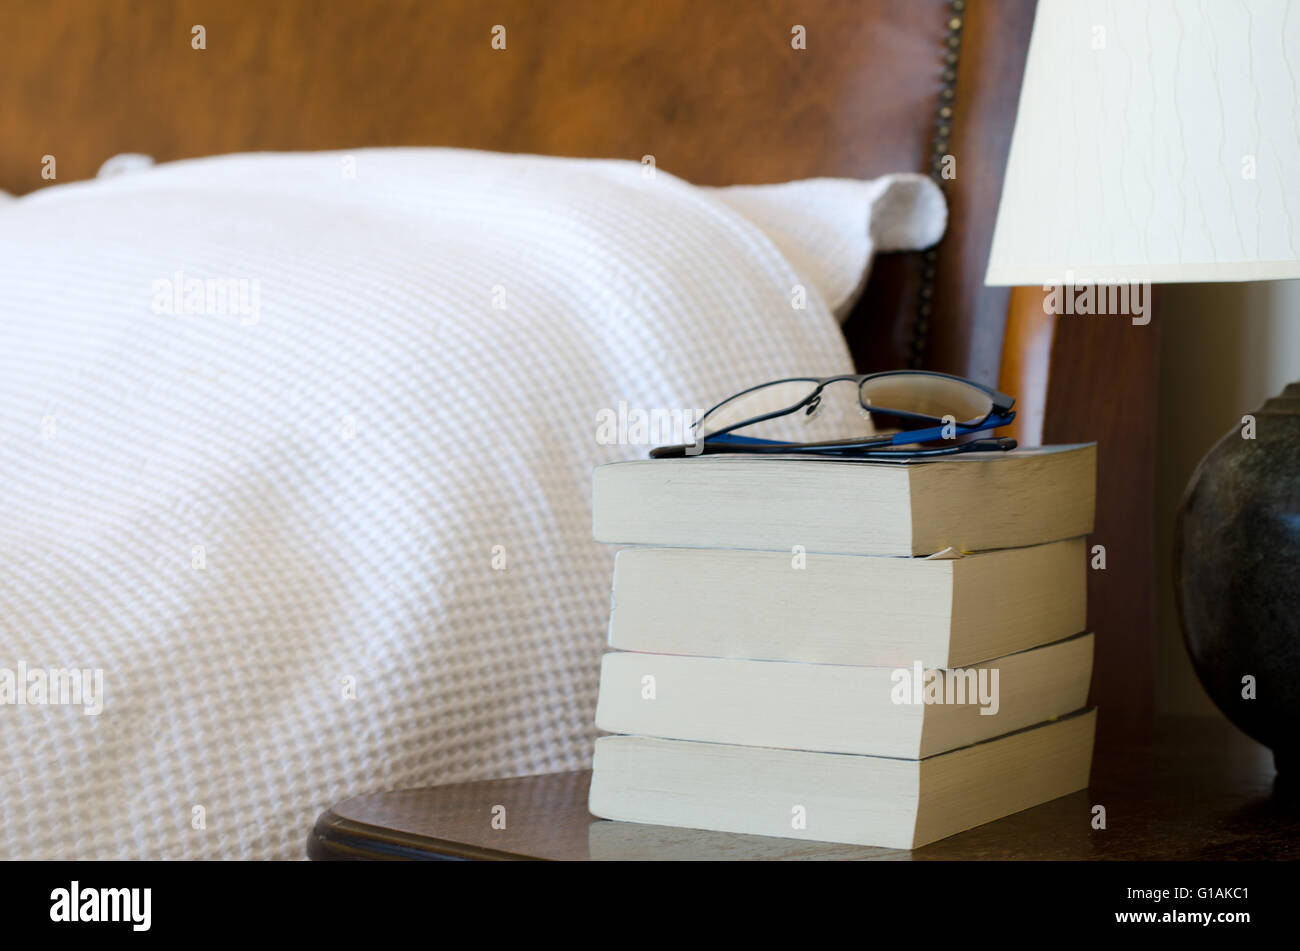 Pile on books with reading glasses on bedside table - Stock Image